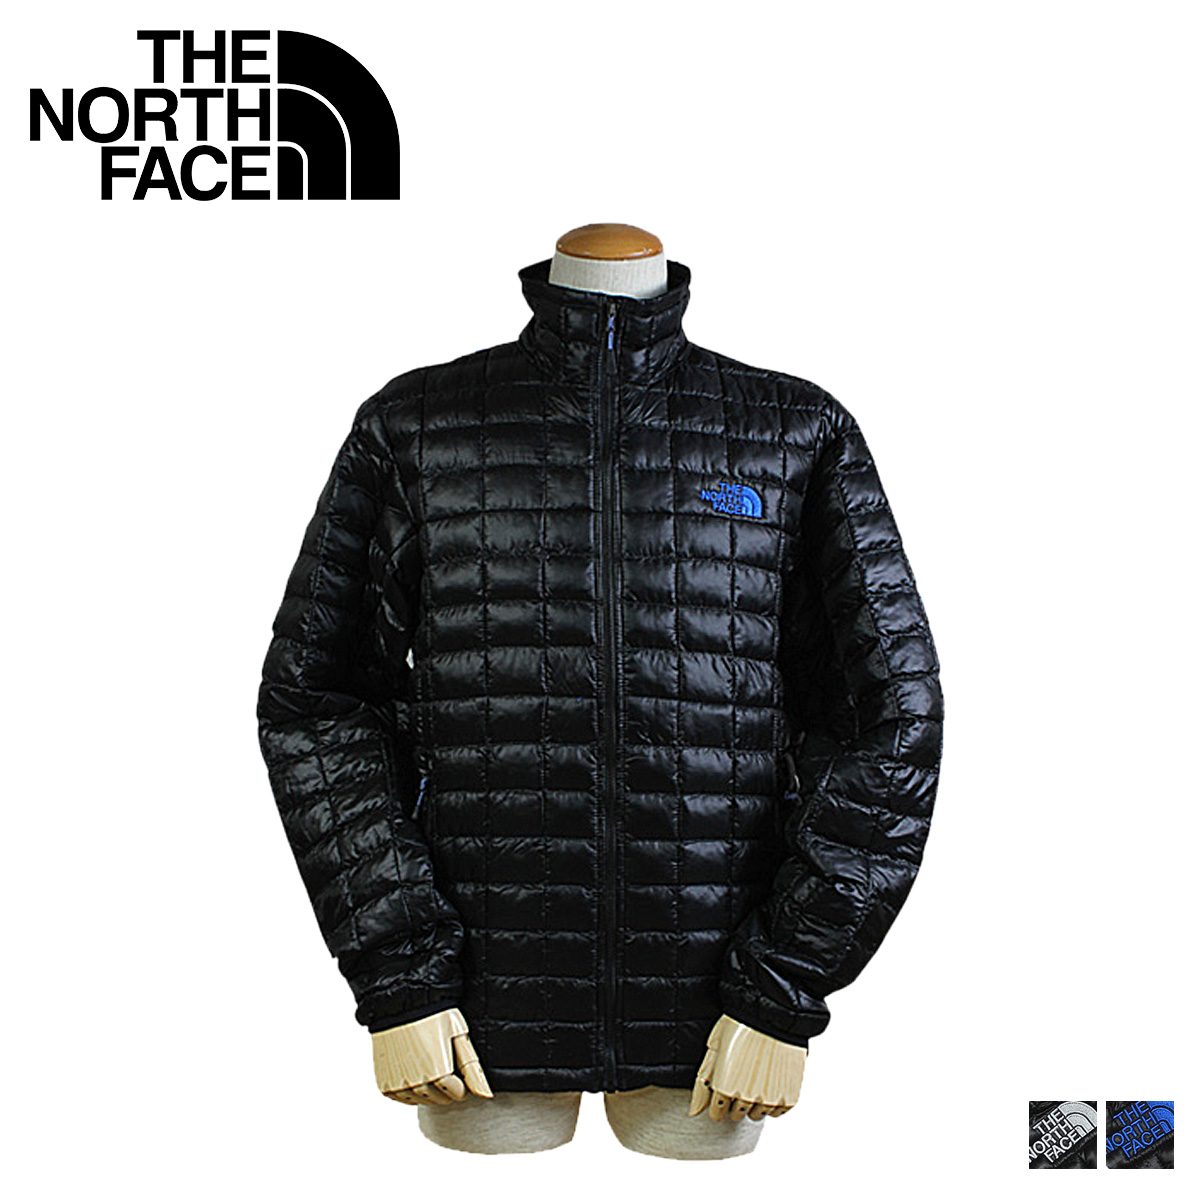 b34684d21 Point five times the FULL ZIP JACKET mens, North face THE NORTH FACE zip up  jacket [Black] A7ZG THERMOBALL [12 / 27 new in stock] [regular] ★ ★ ...